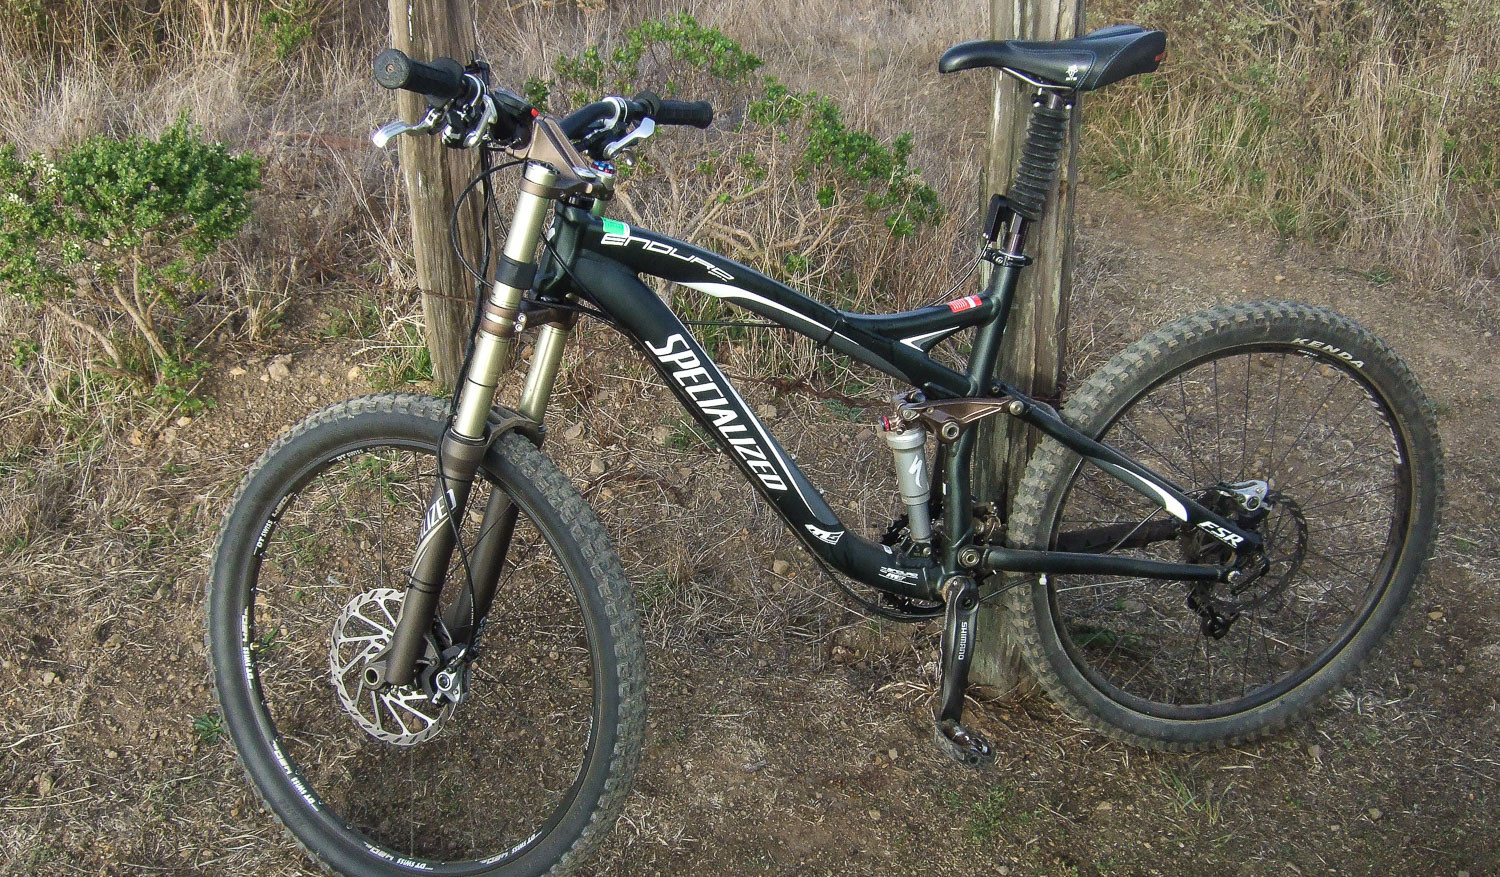 How To Convert Your Trail Bike Into A Dh Friendly Sled